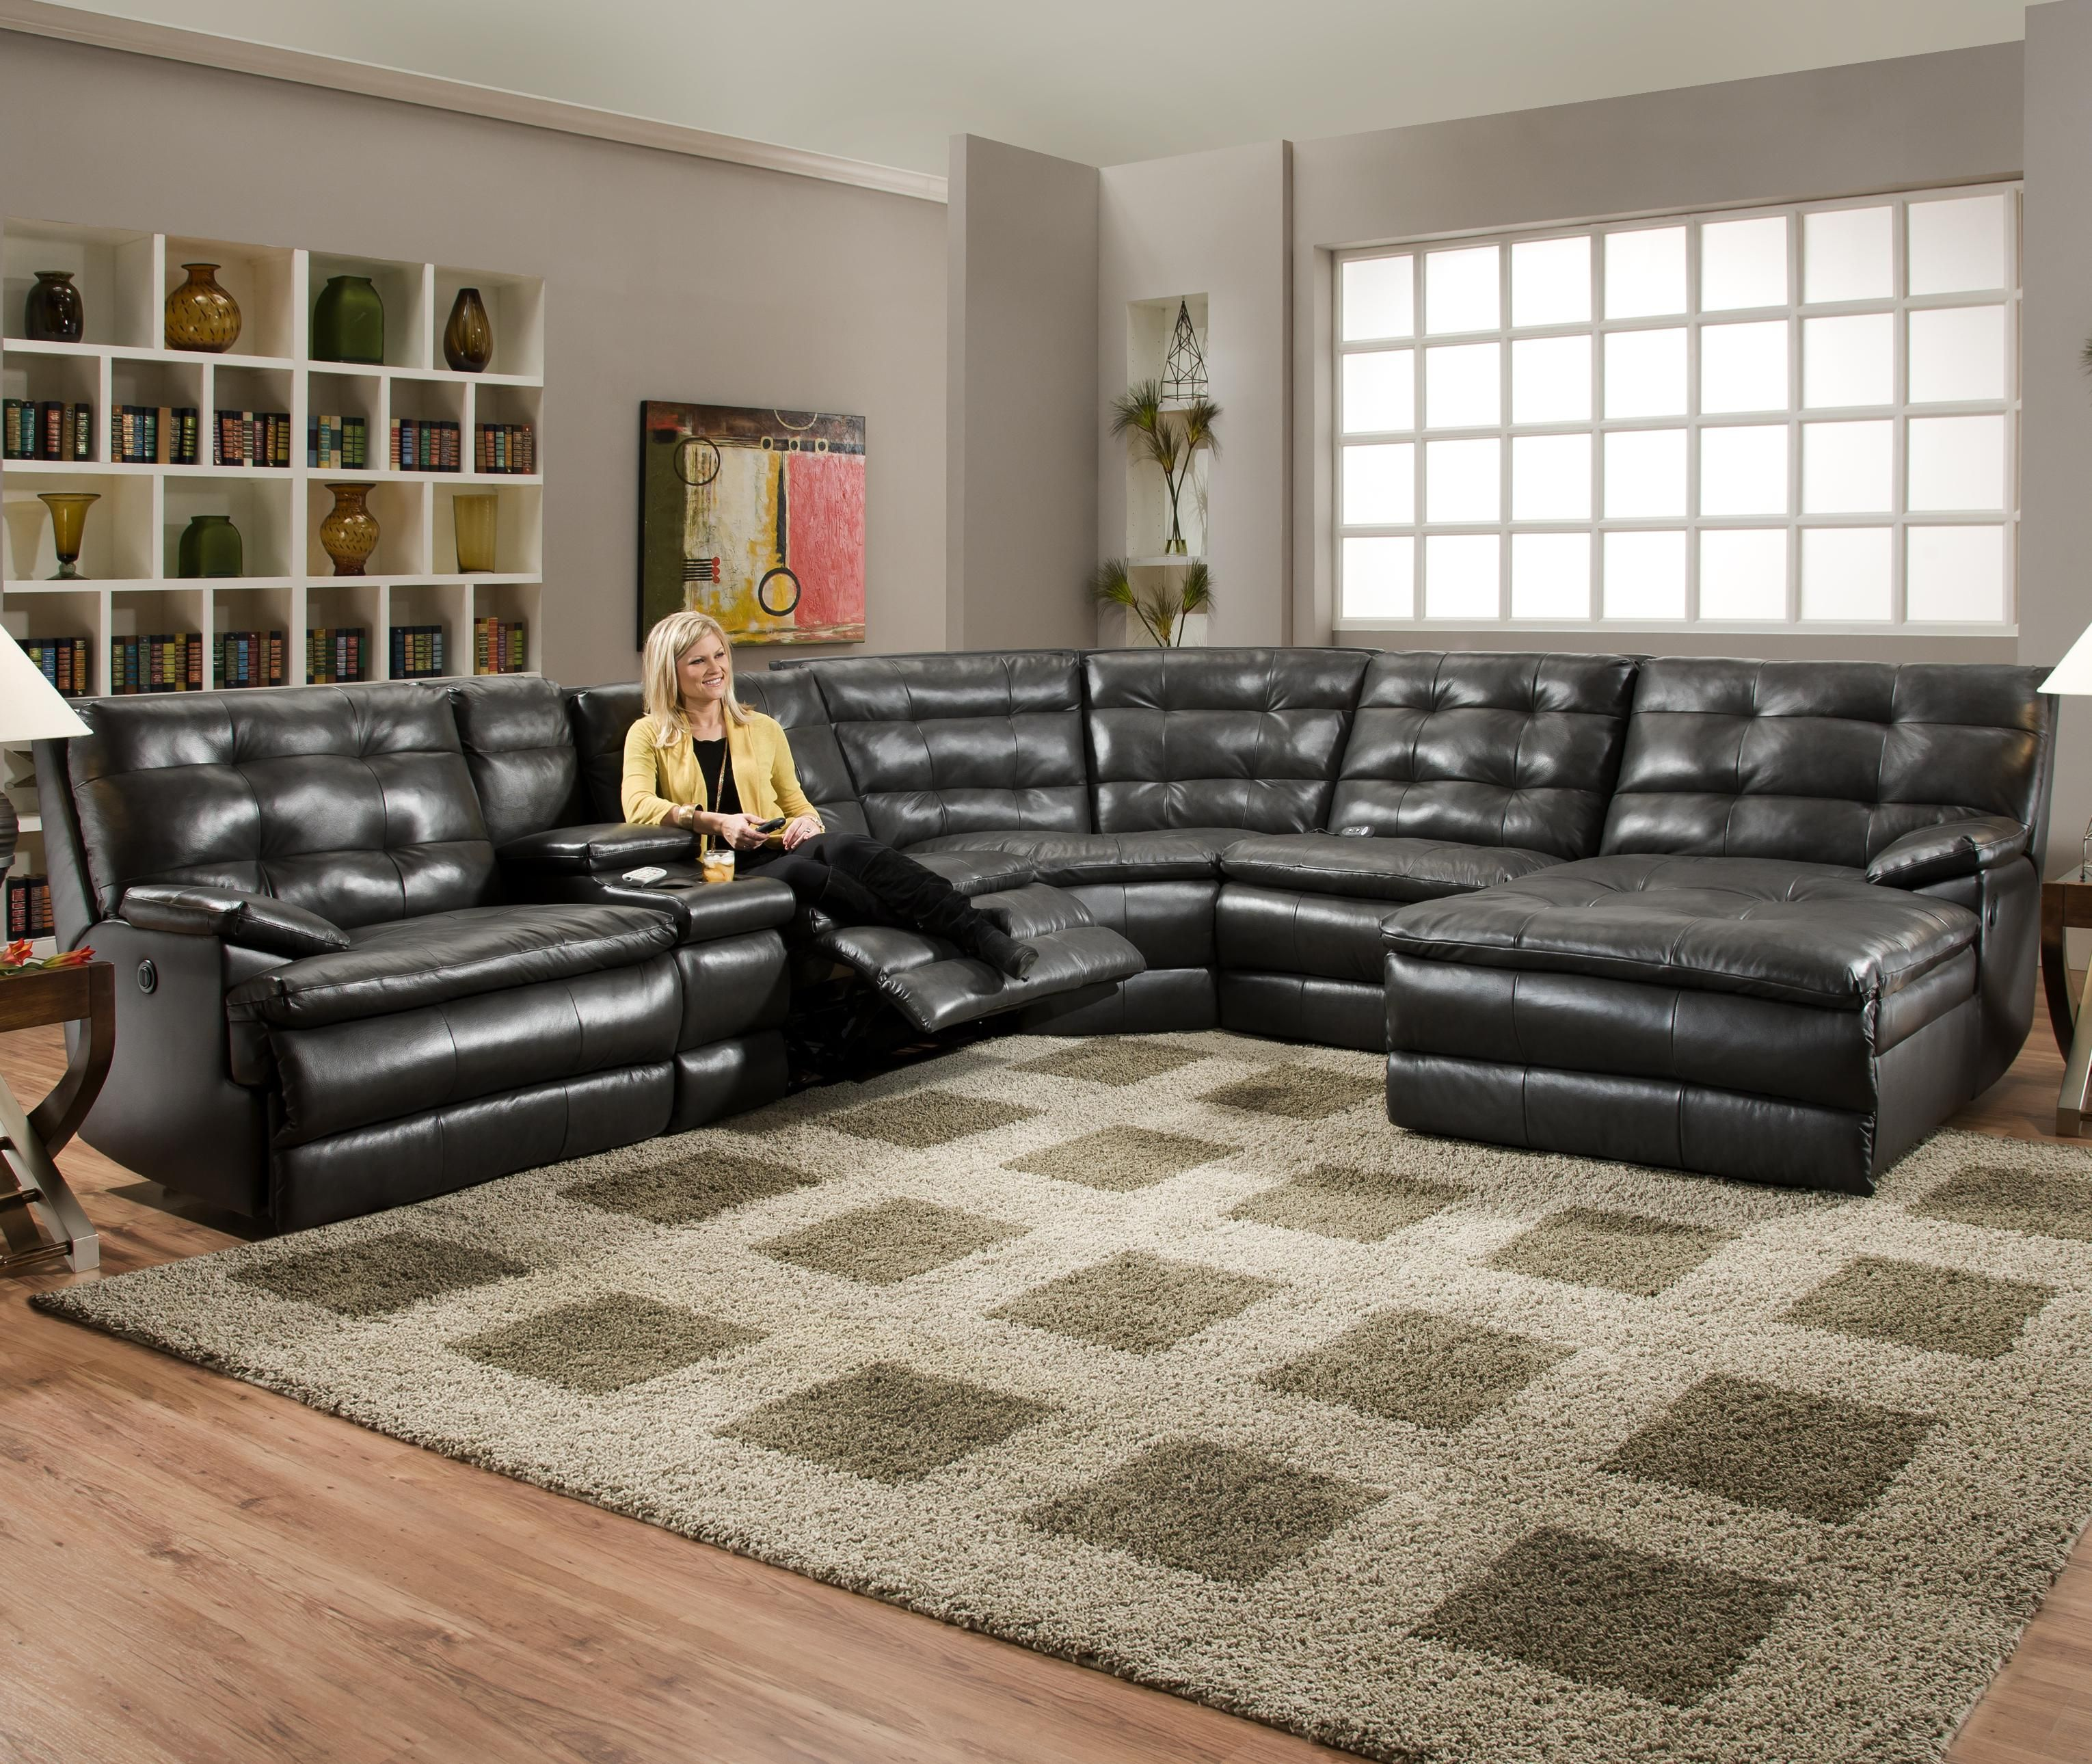 Luxurious Tufted Leather Sectional Sofa in Classy Black Color with